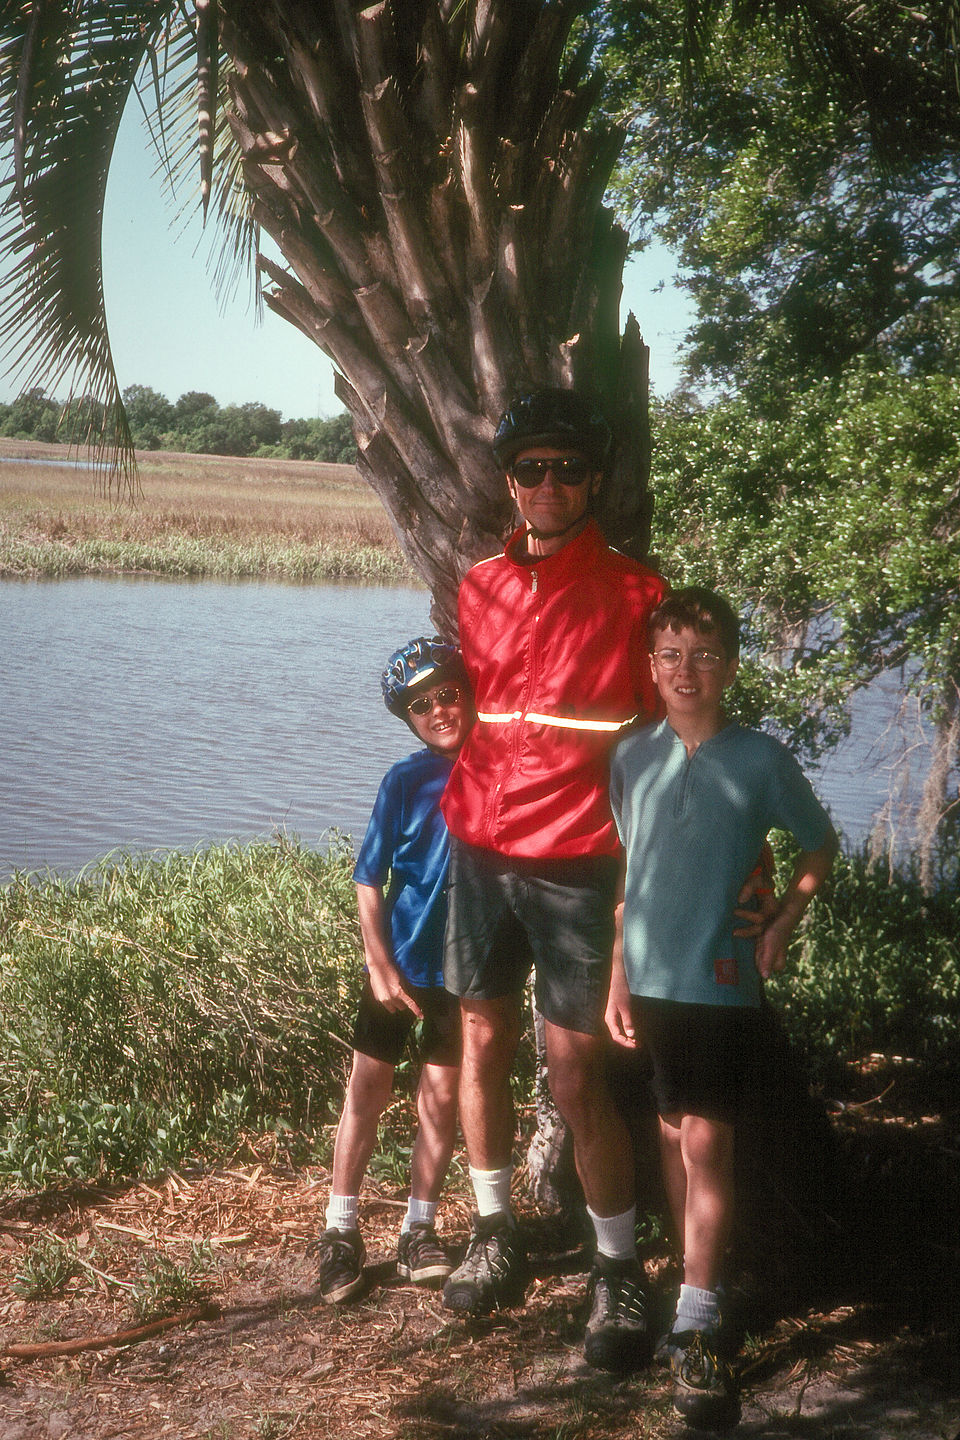 Herb and boys on rest from bike ride